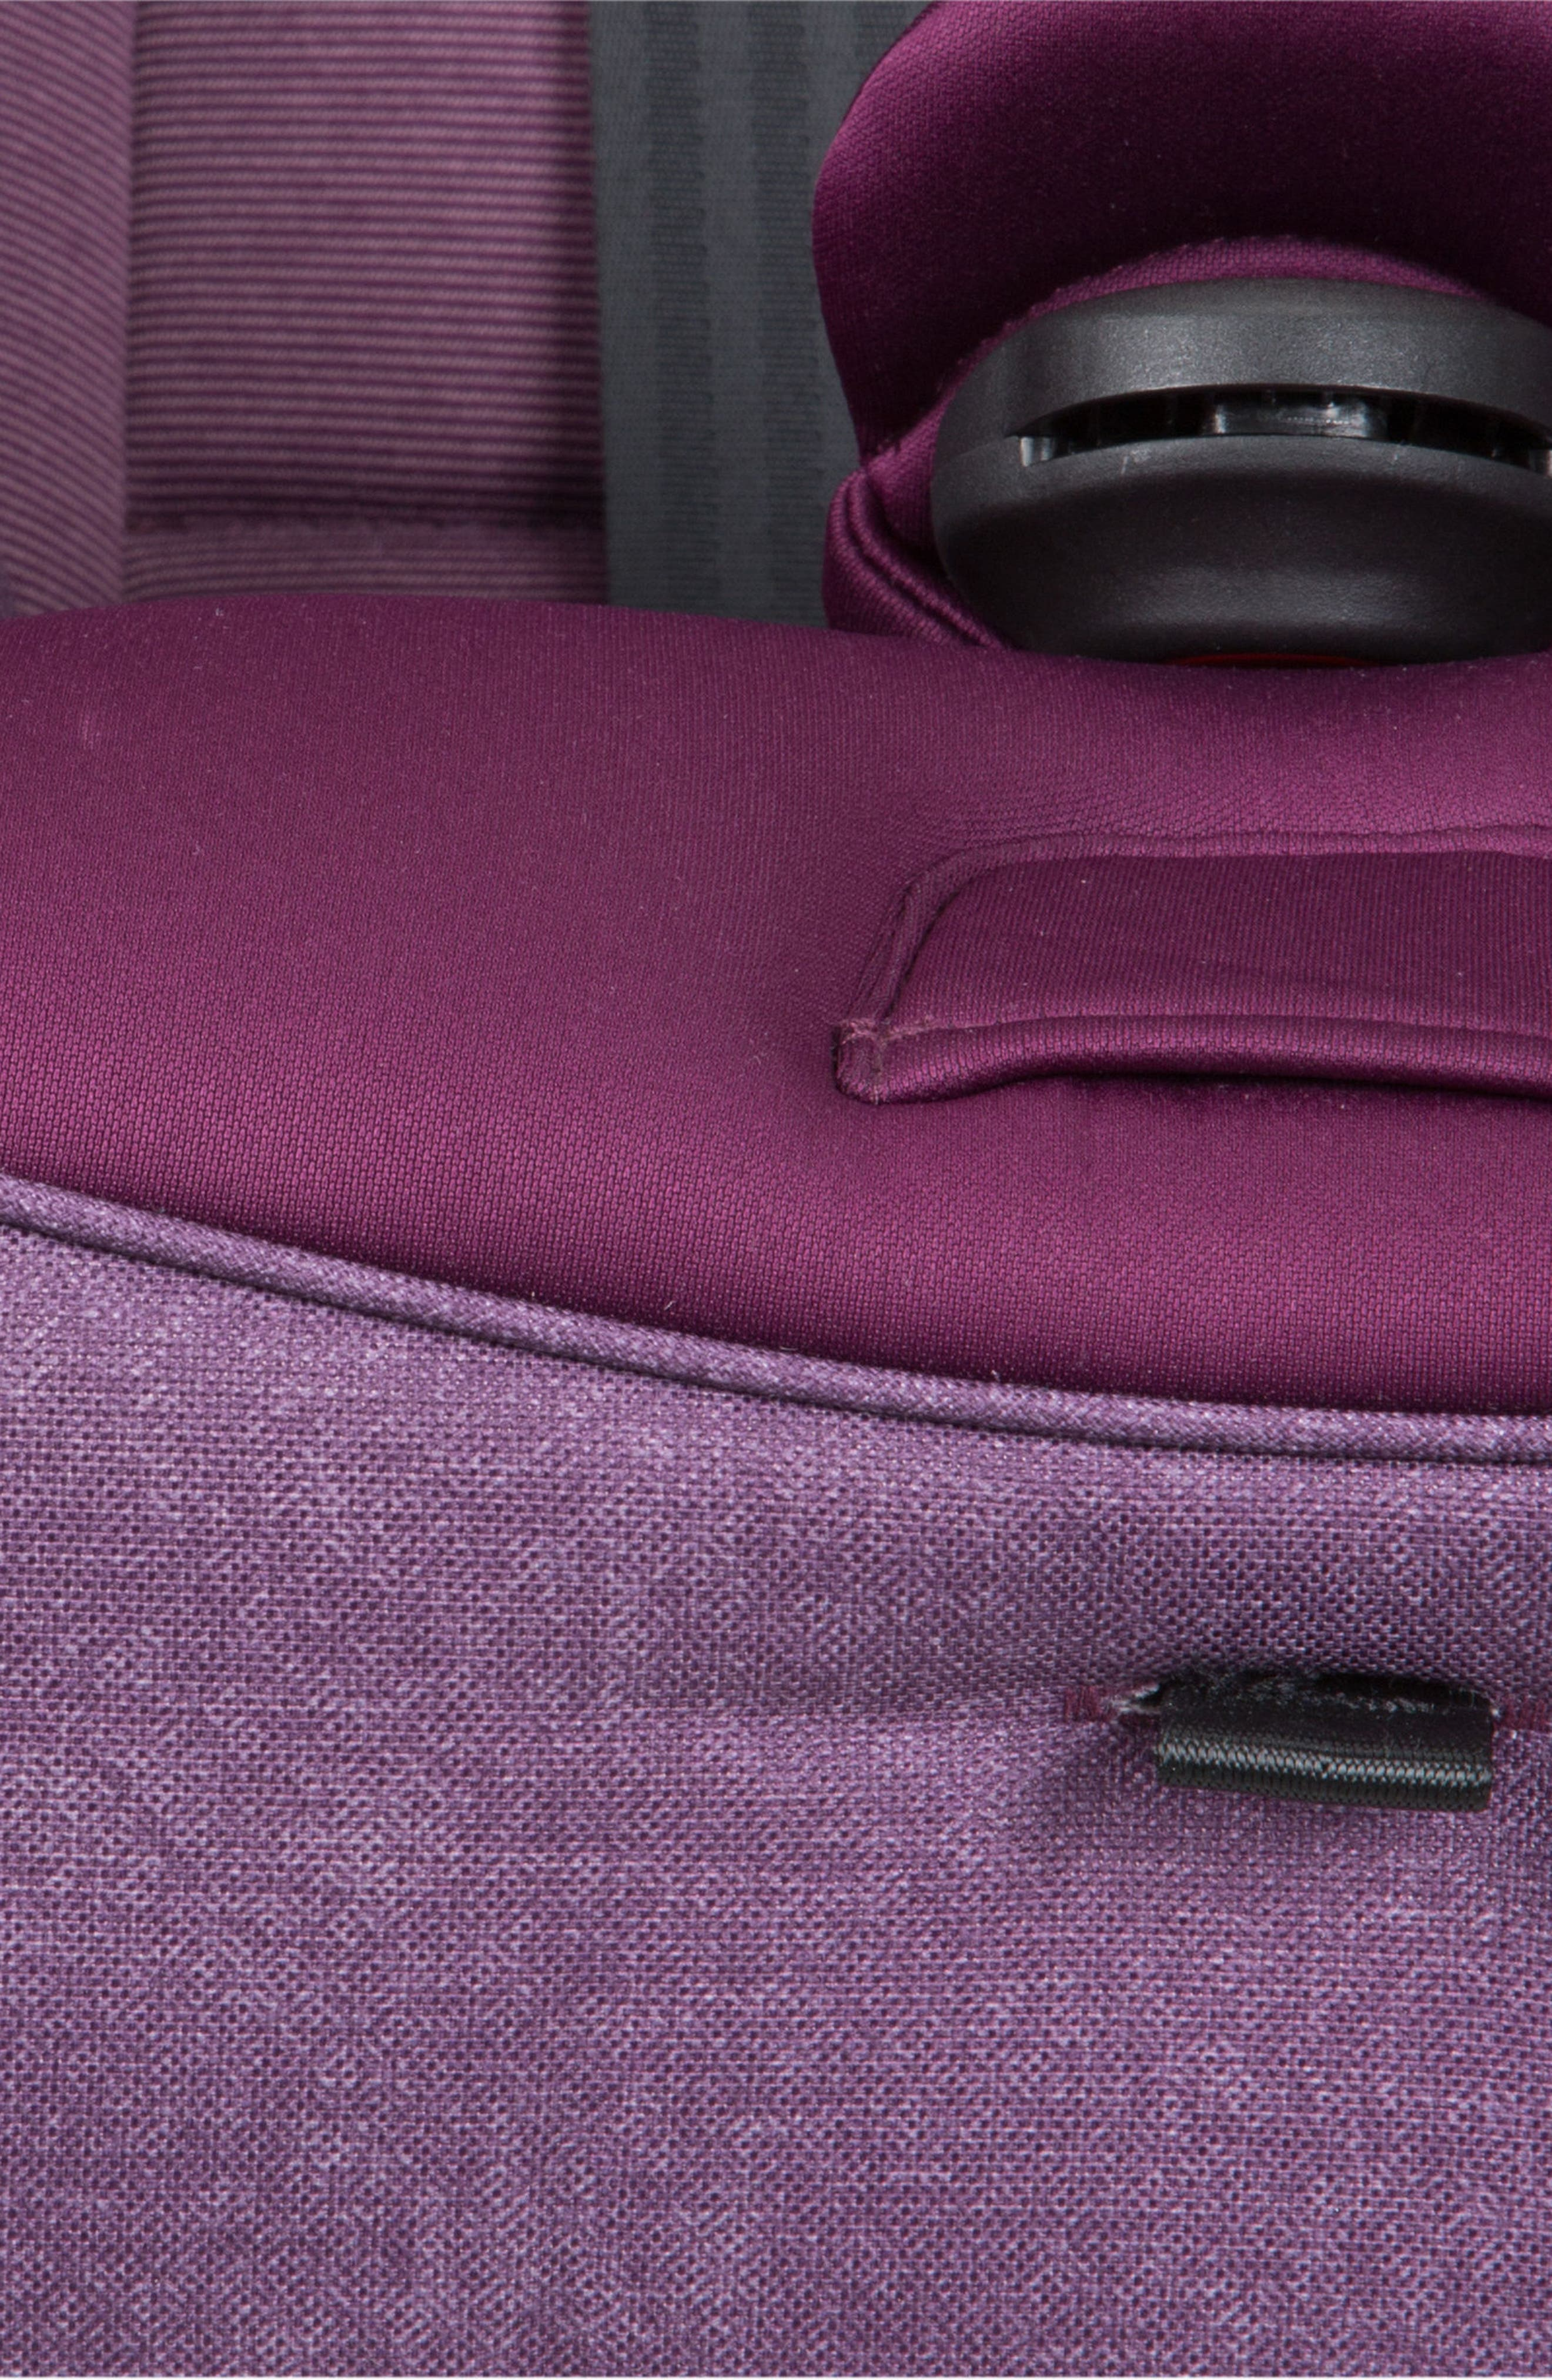 Pria<sup>™</sup> 85 Max Nomad Collection Convertible Car Seat,                             Alternate thumbnail 10, color,                             NOMAD PURPLE